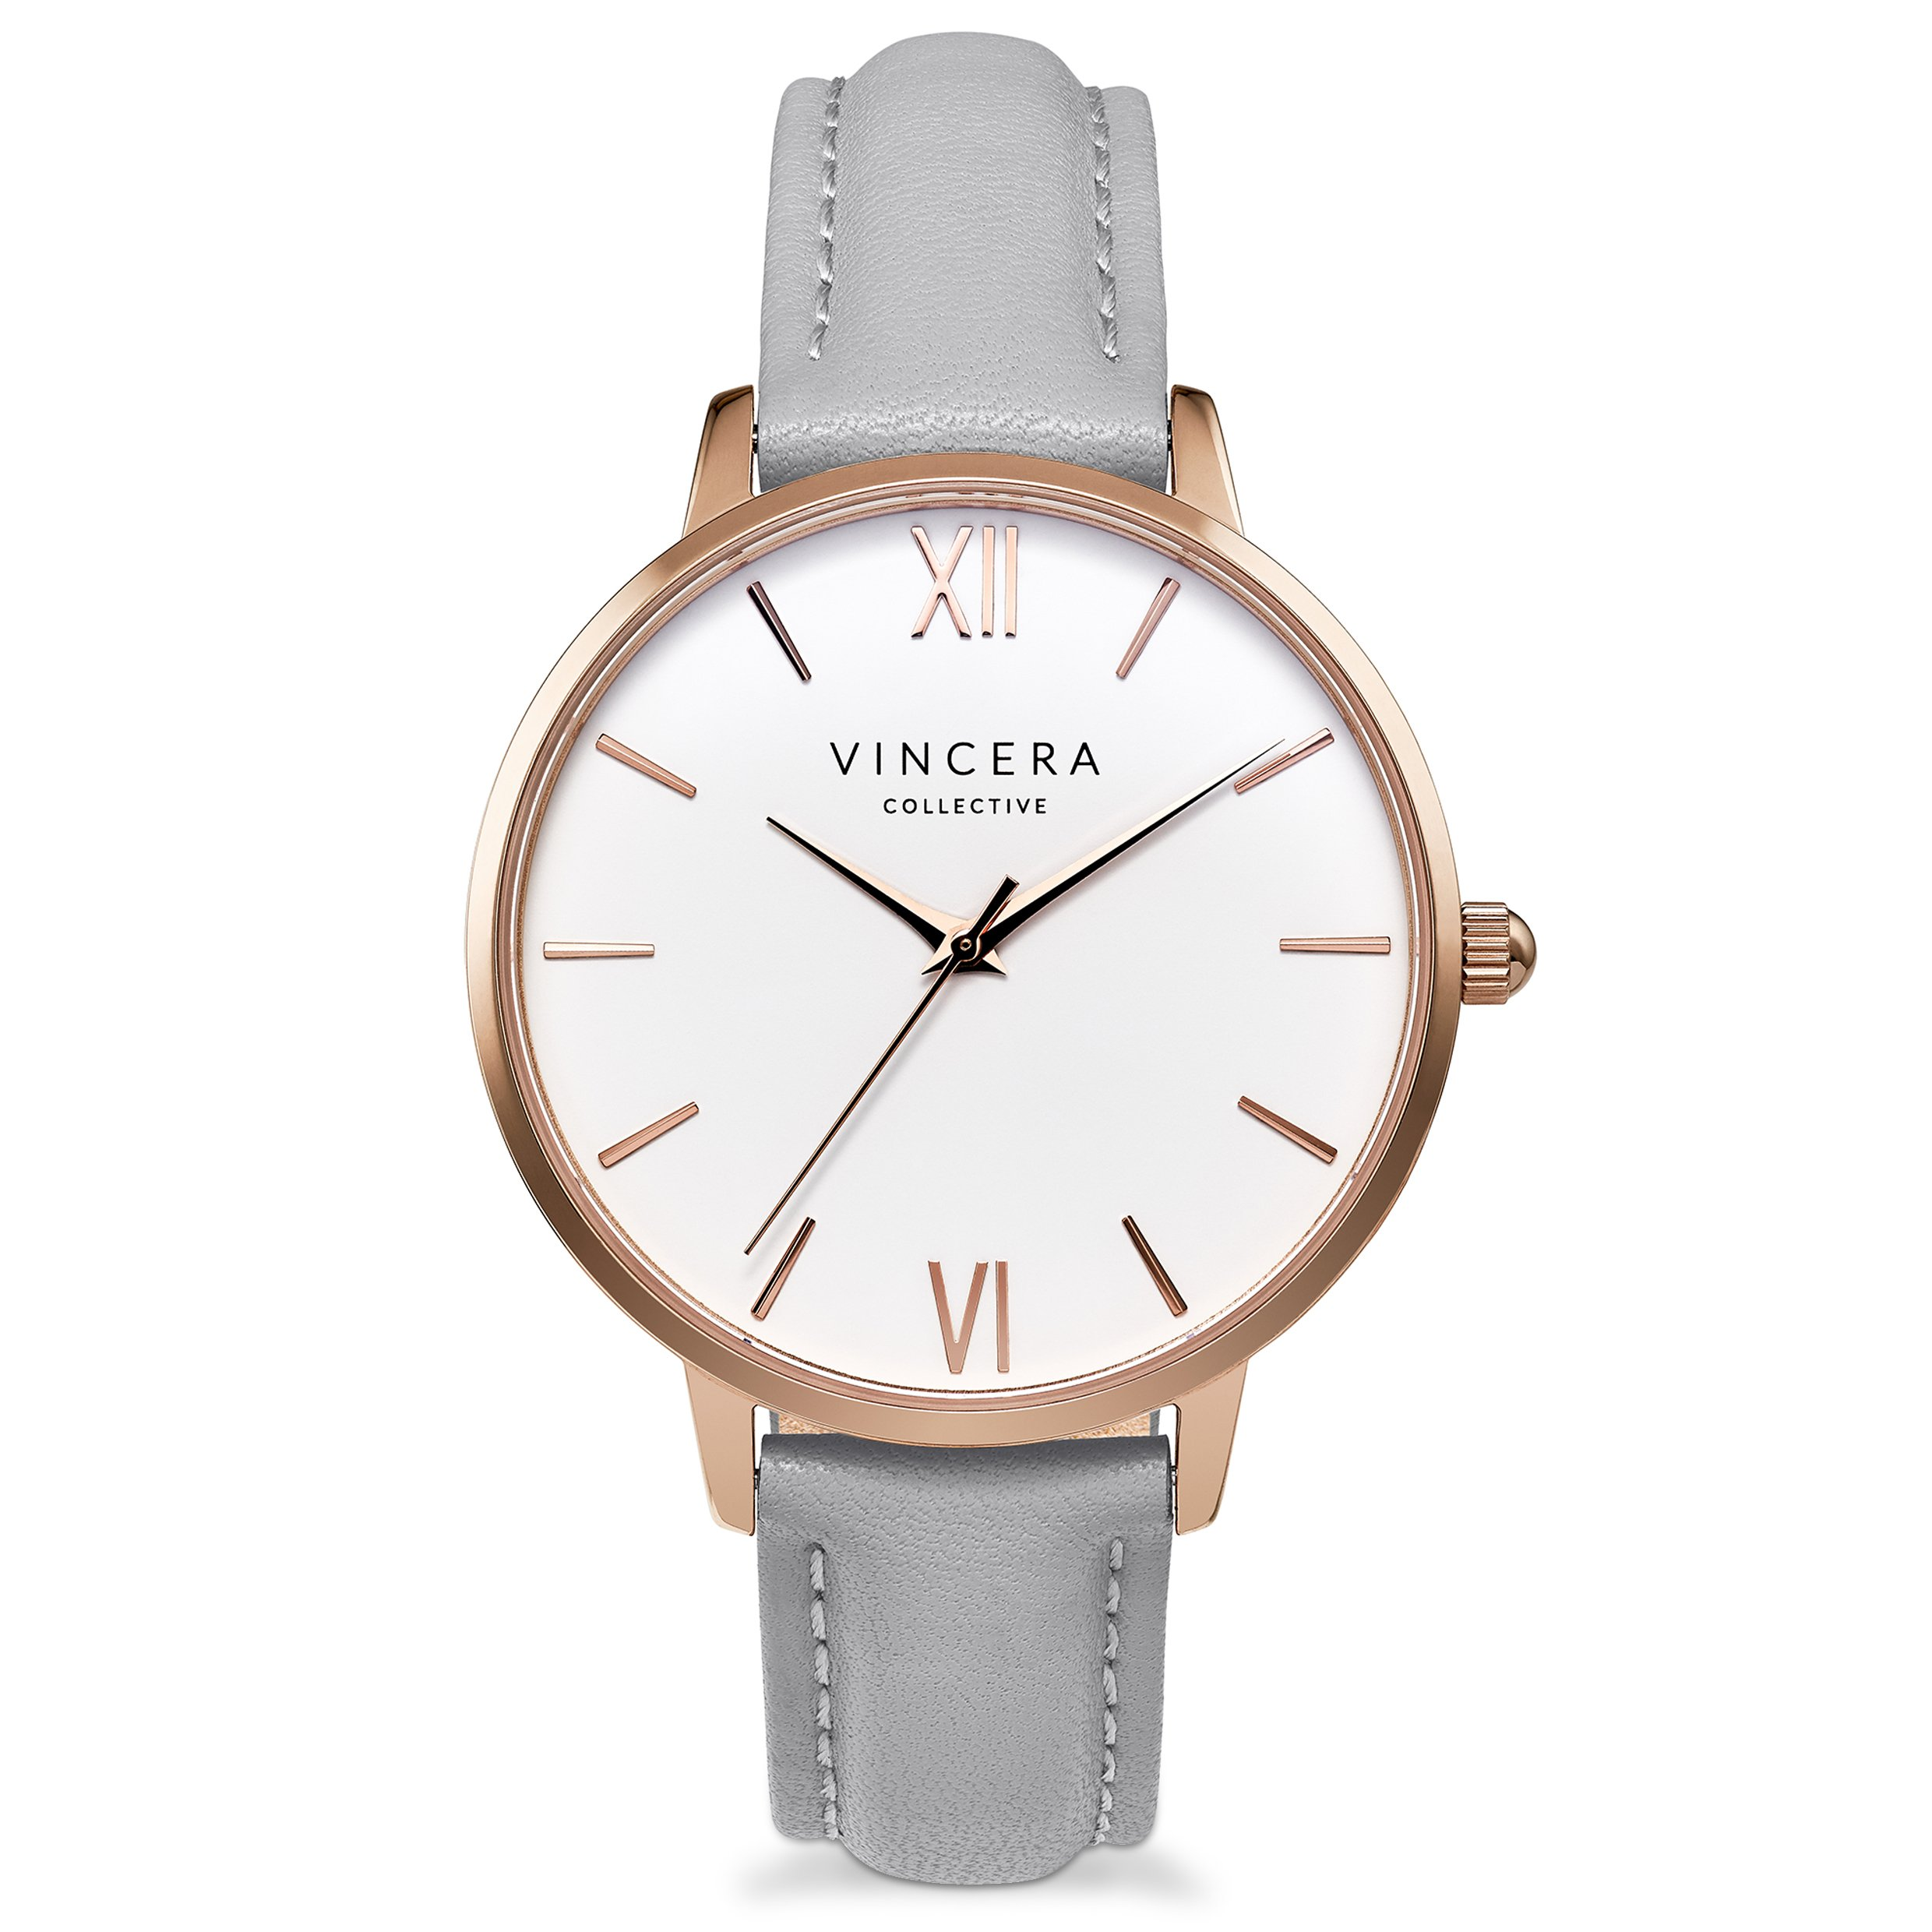 Vincero Luxury Women's Eros Wrist Watch — Rose Gold + White dial with a Fog Leather Watch Band — 38mm Analog Watch — Japanese Quartz Movement by Vincero